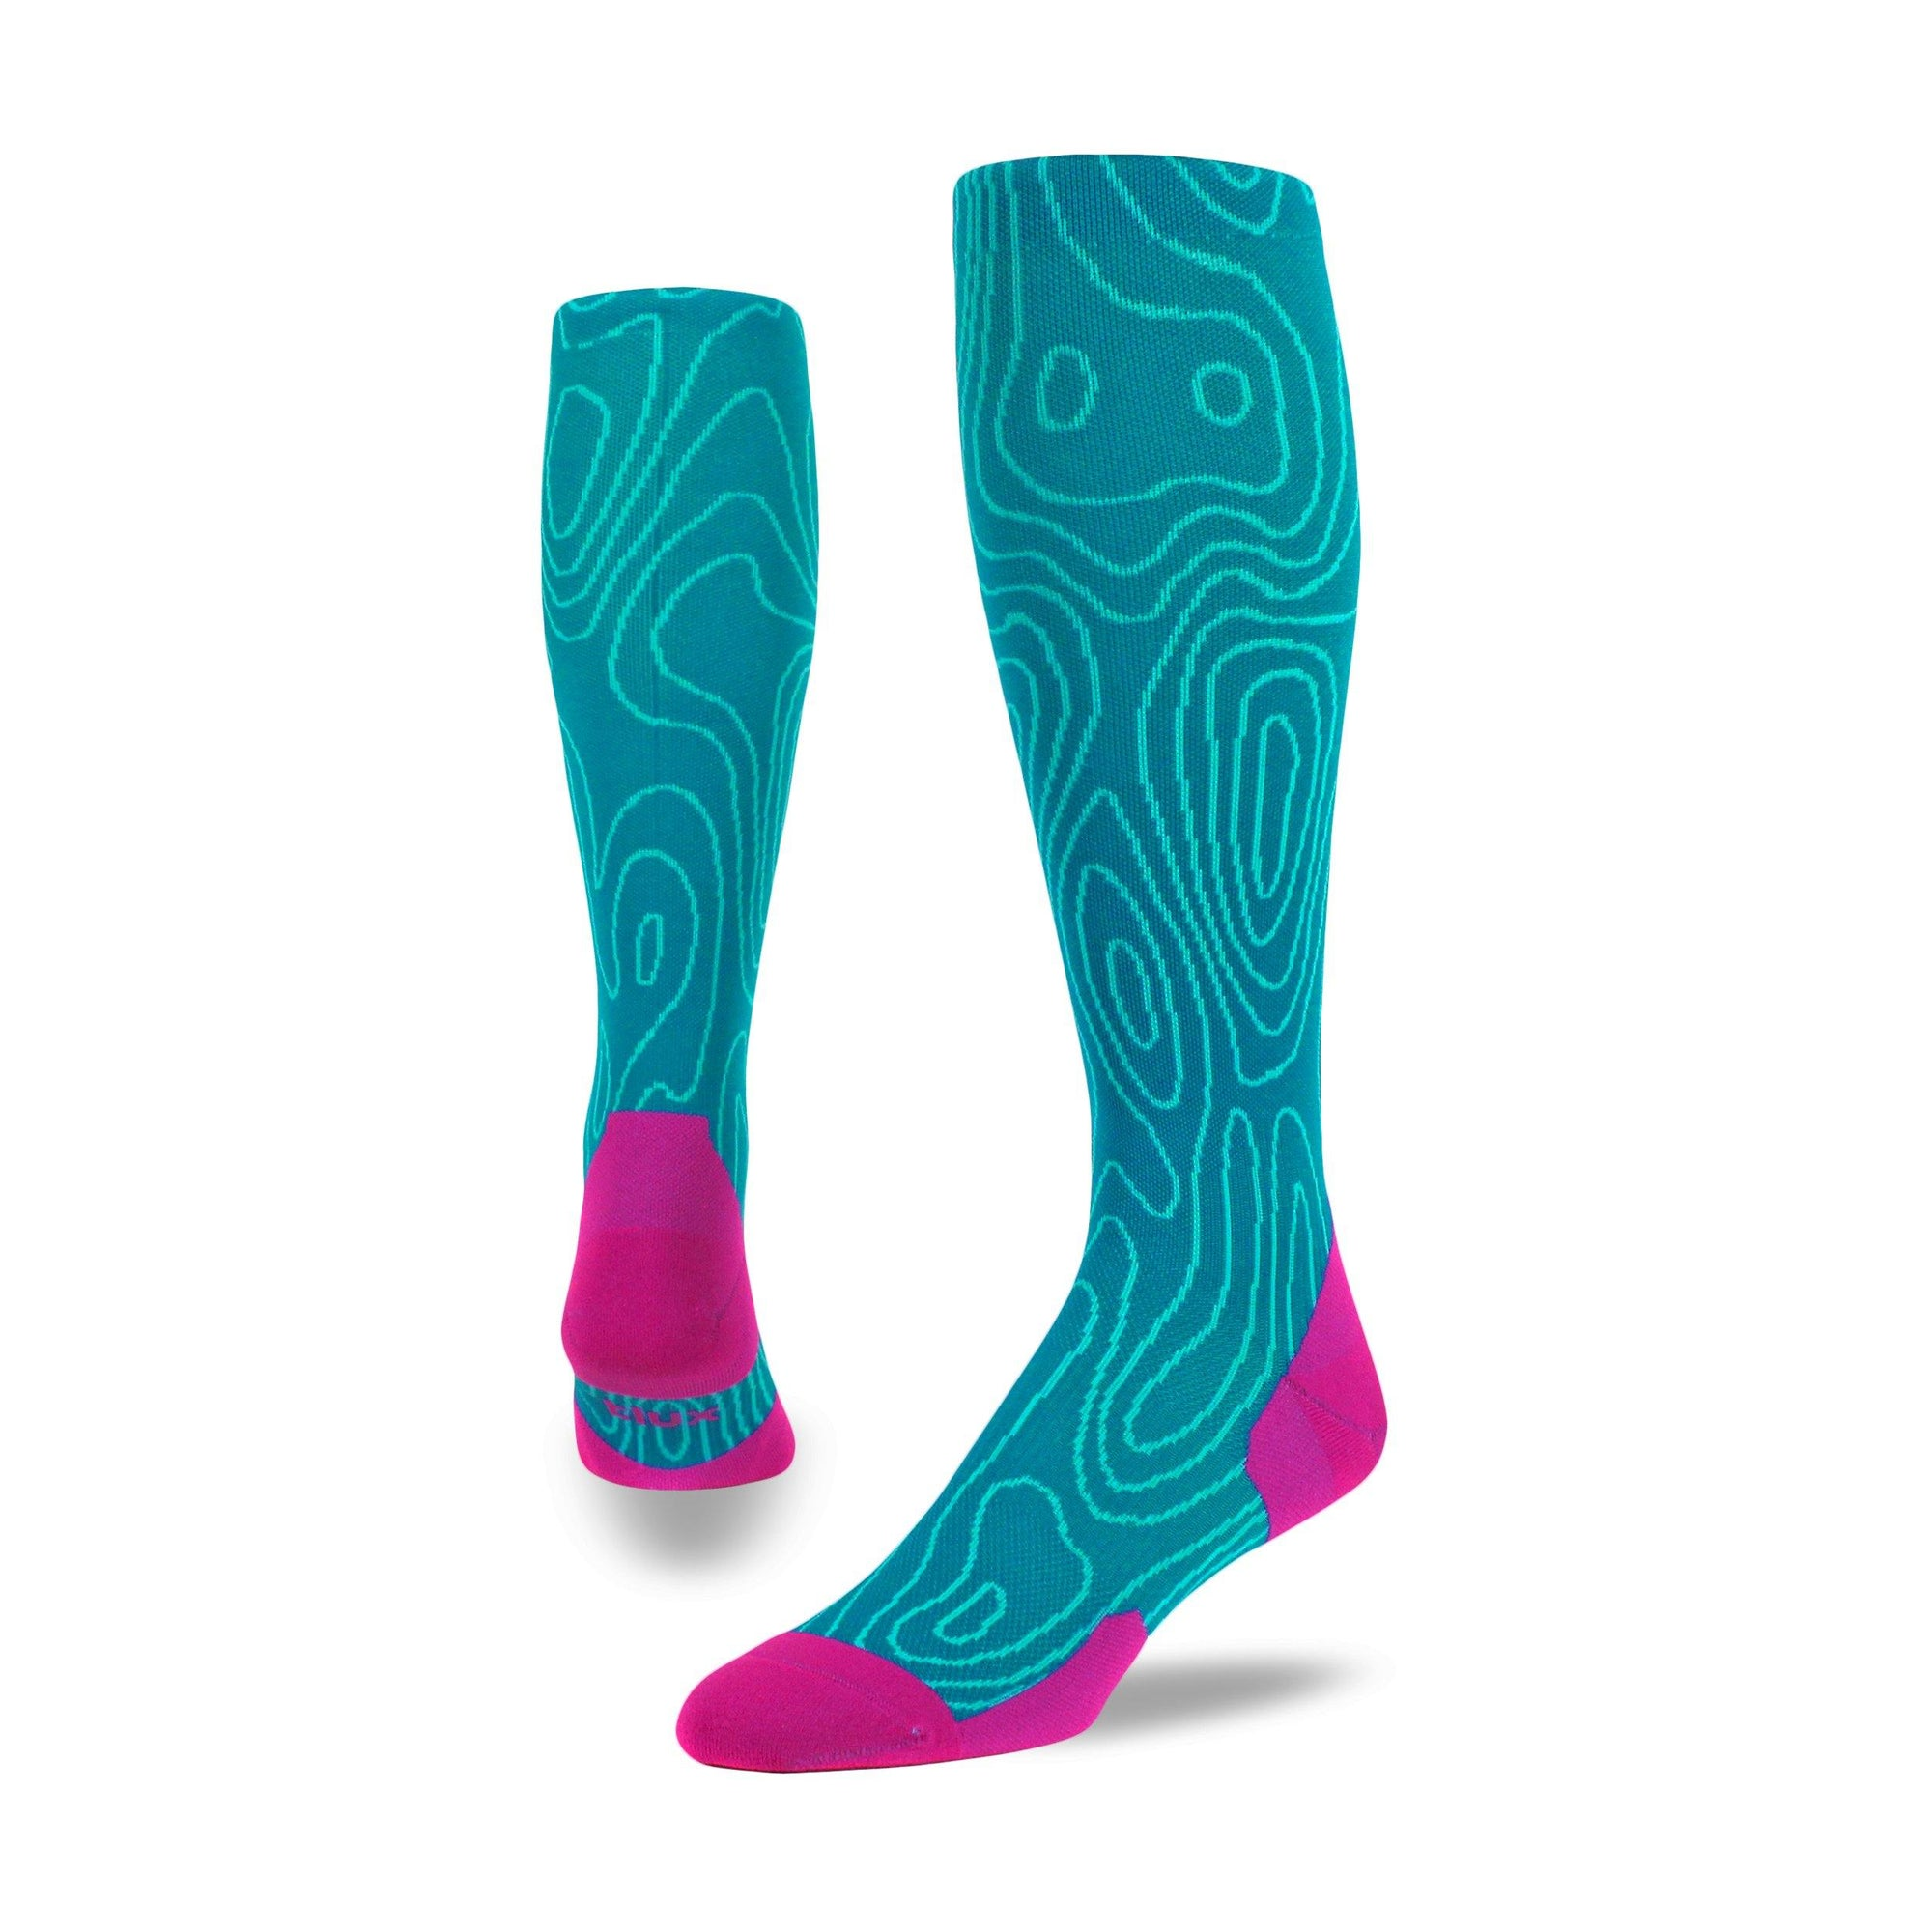 Topo Run OTC - Graduated Compression Socks.